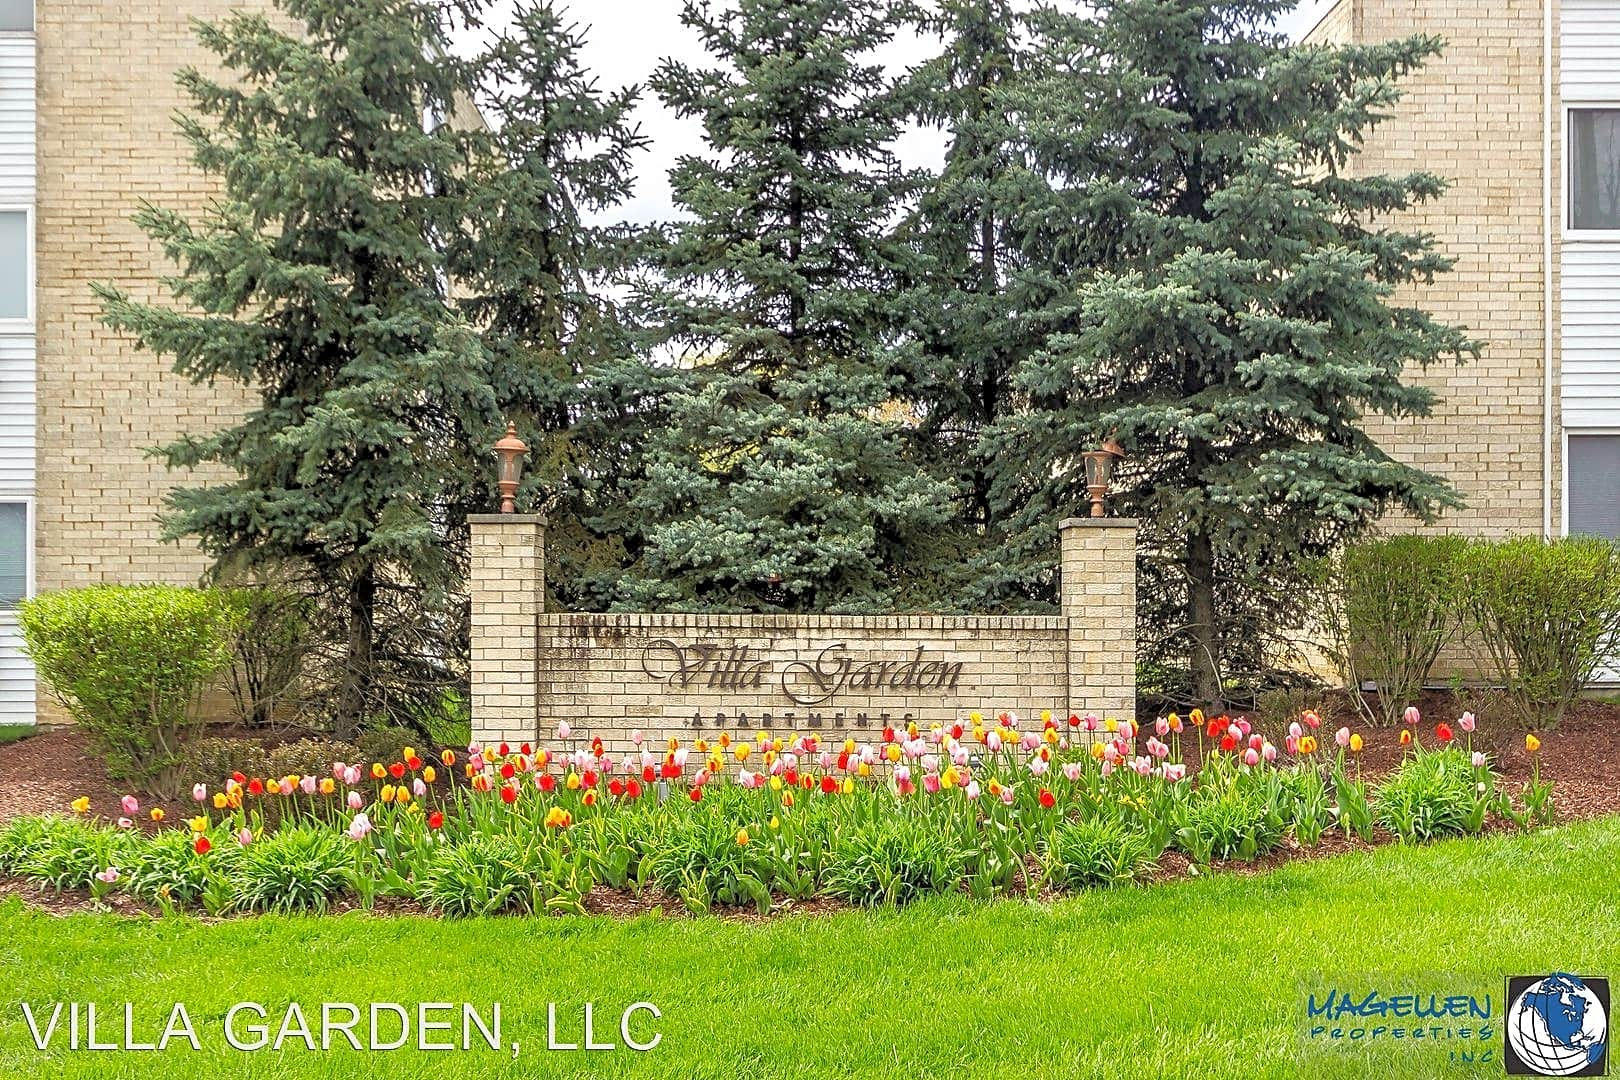 Apartments Near DeVry Villa Garden for DeVry University Students in Addison, IL